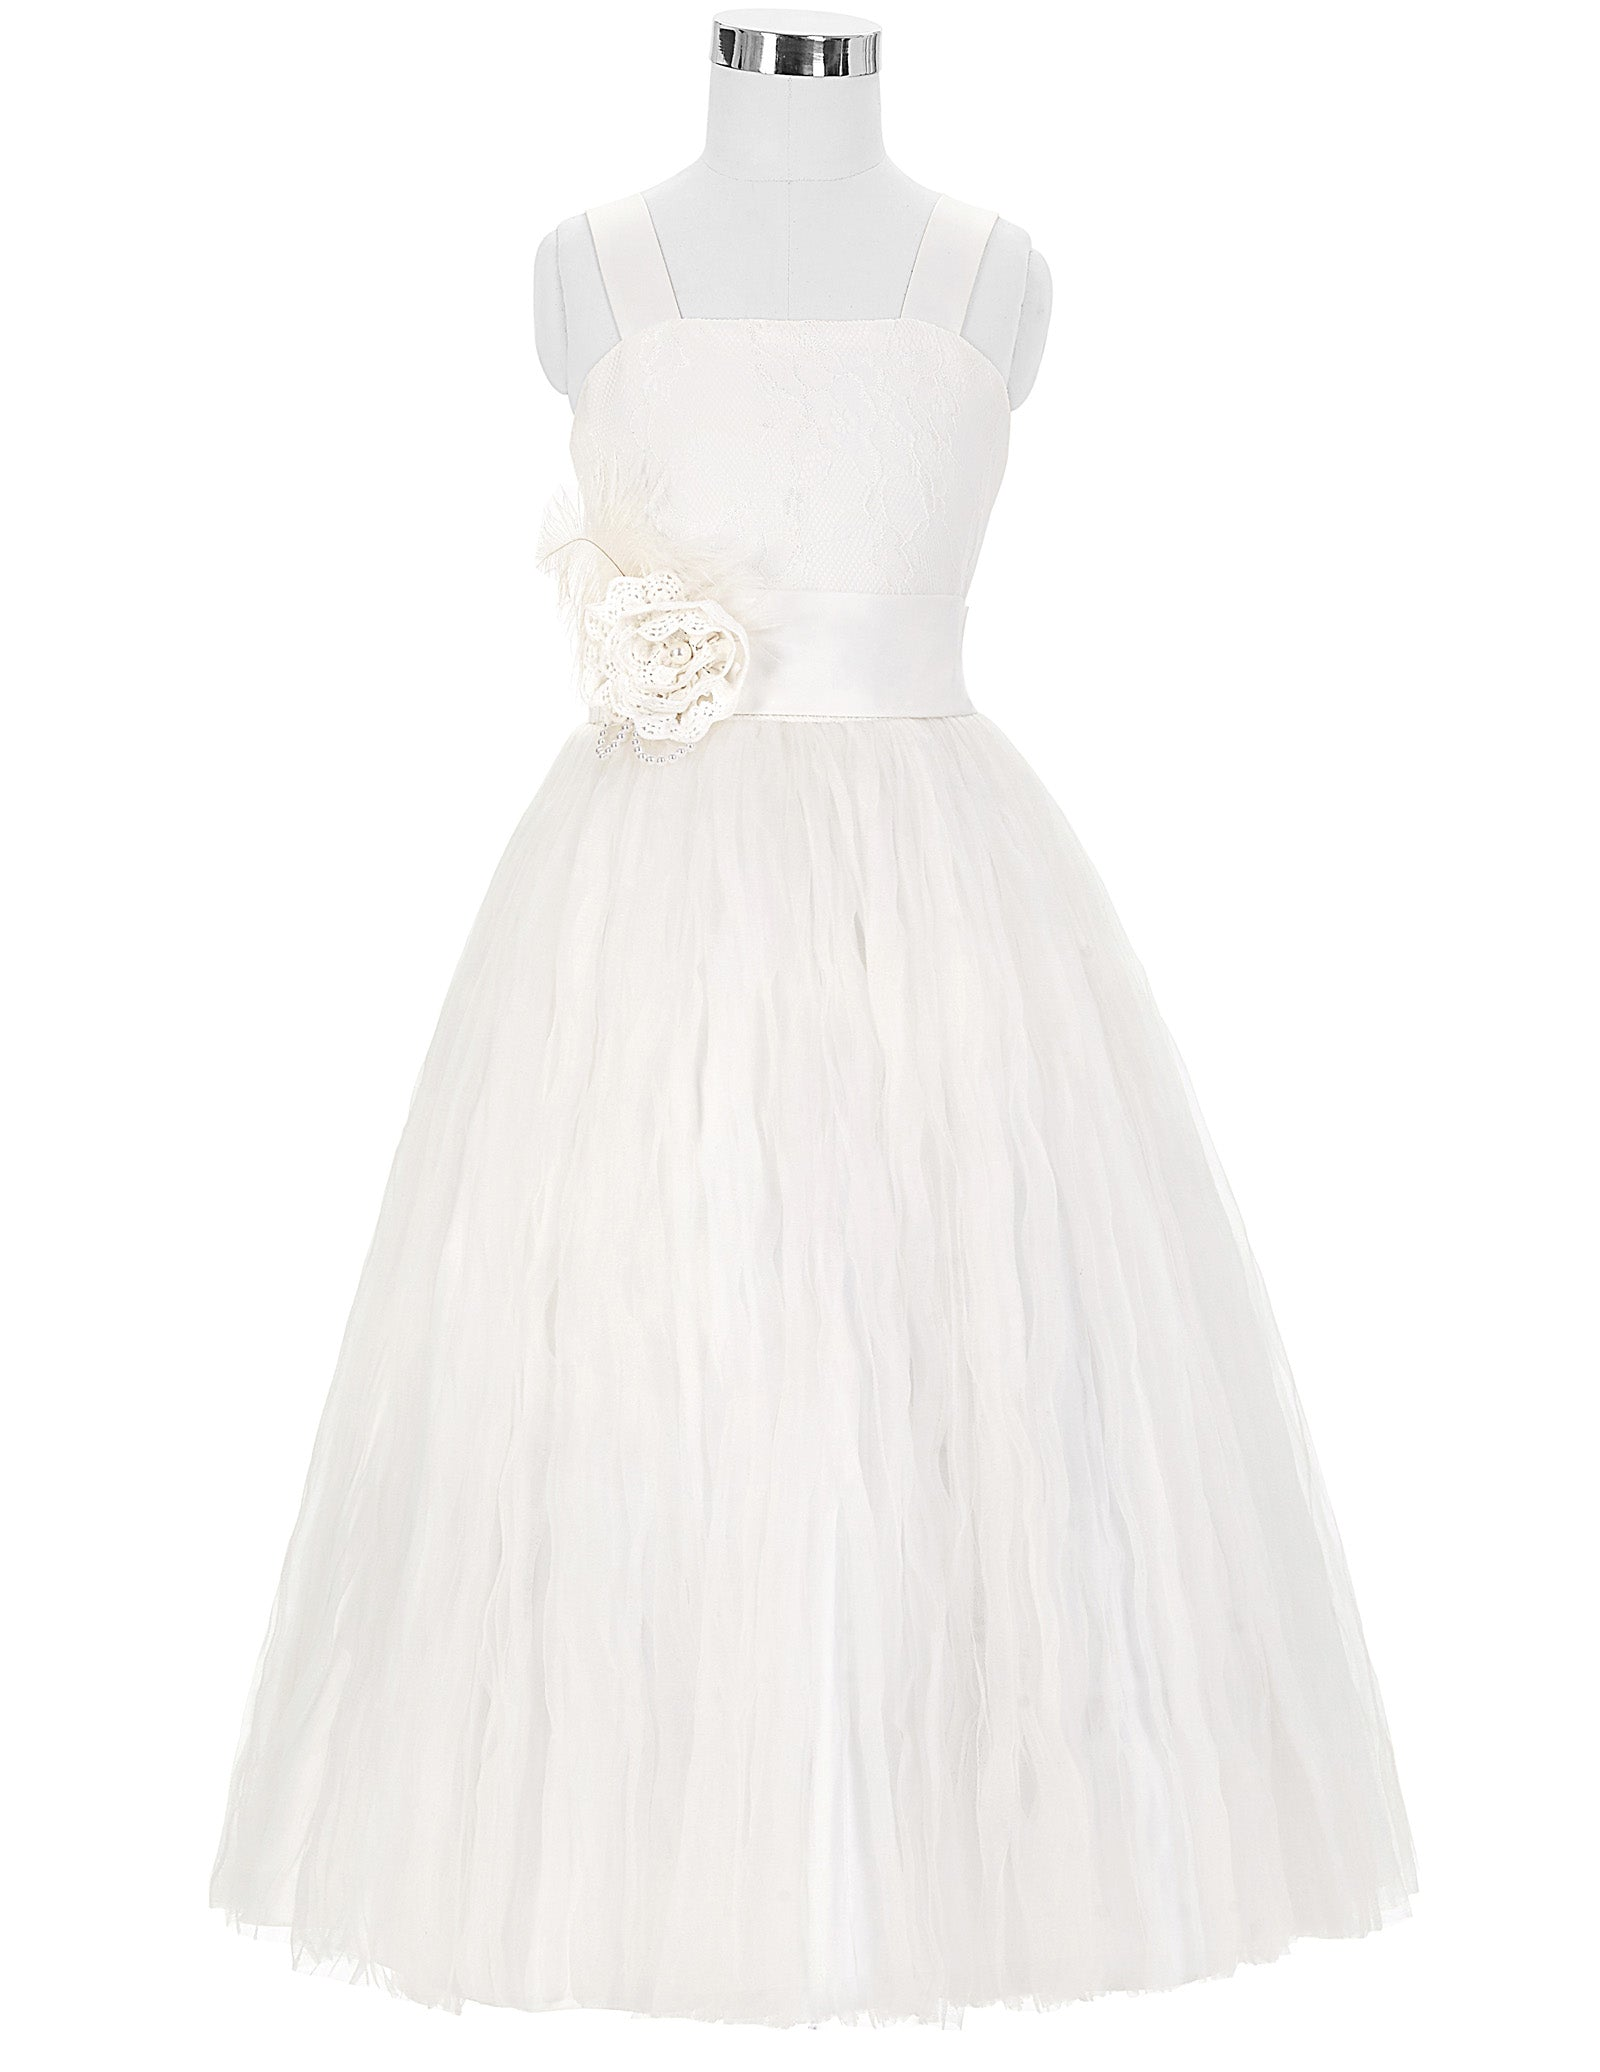 Grace Karin Straight Neck Princess Lace Flower Girl Dress With Flower